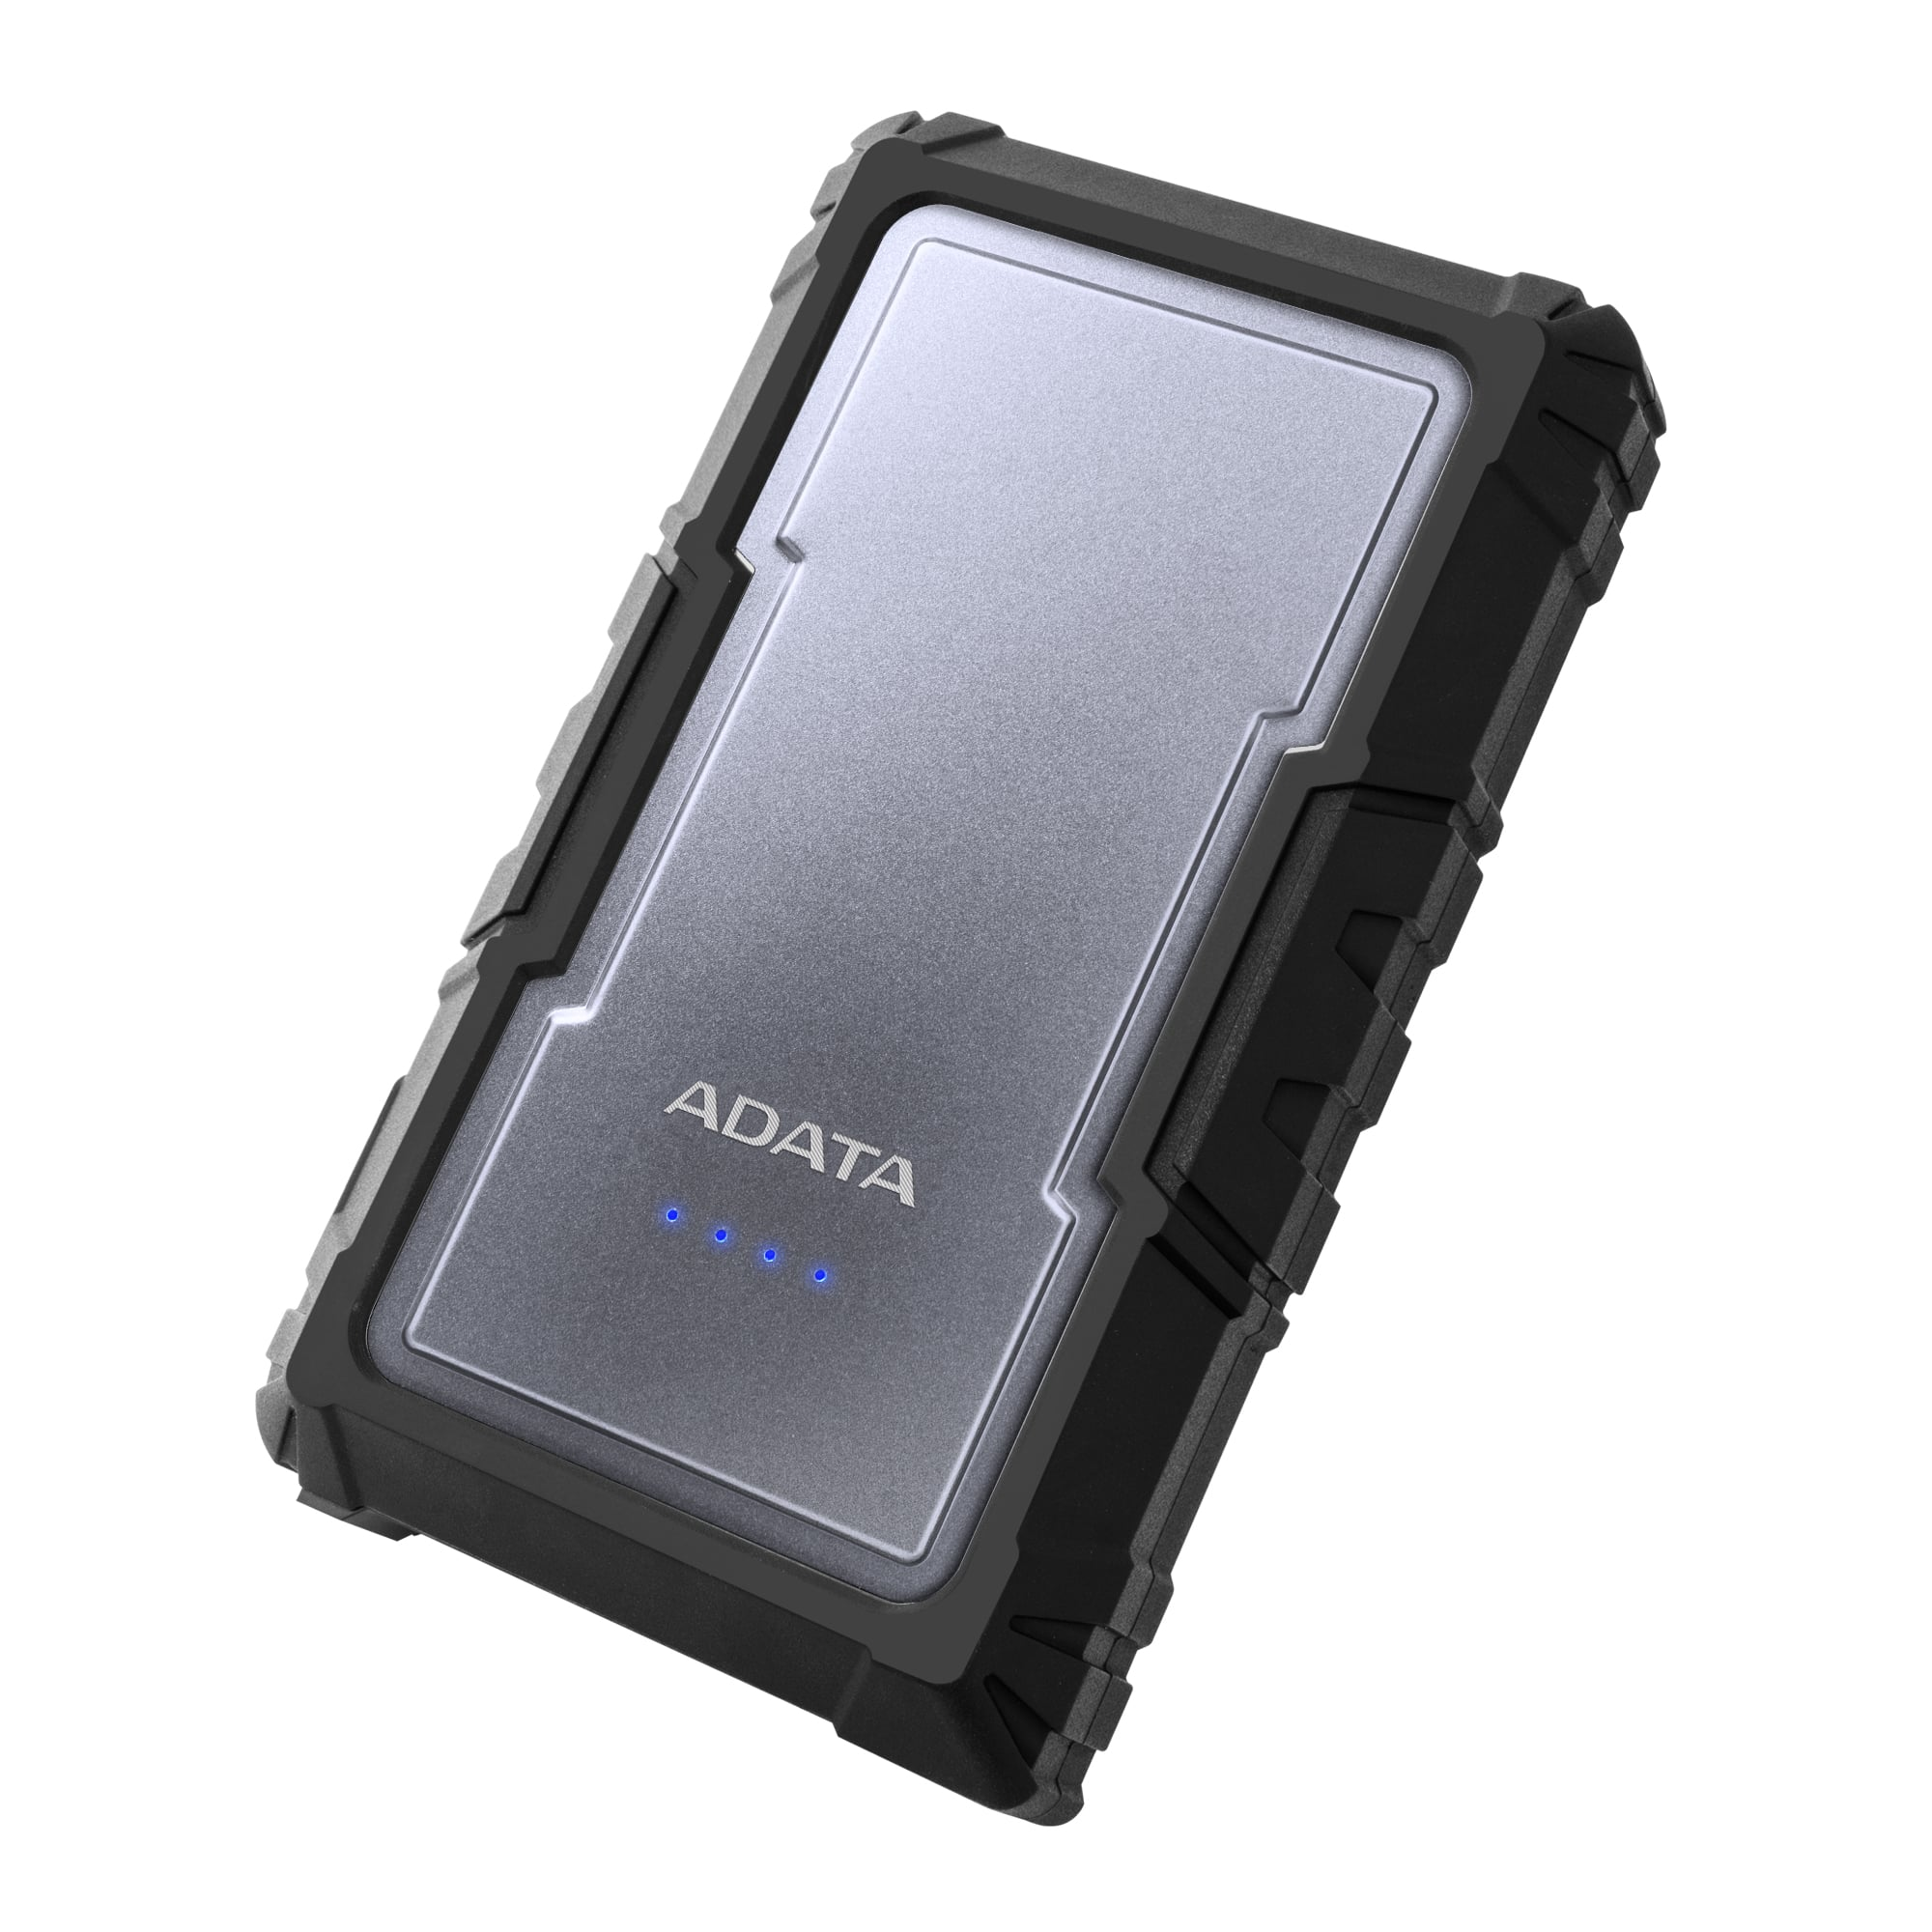 ADATA A16750 Power Bank 16750mAh silver